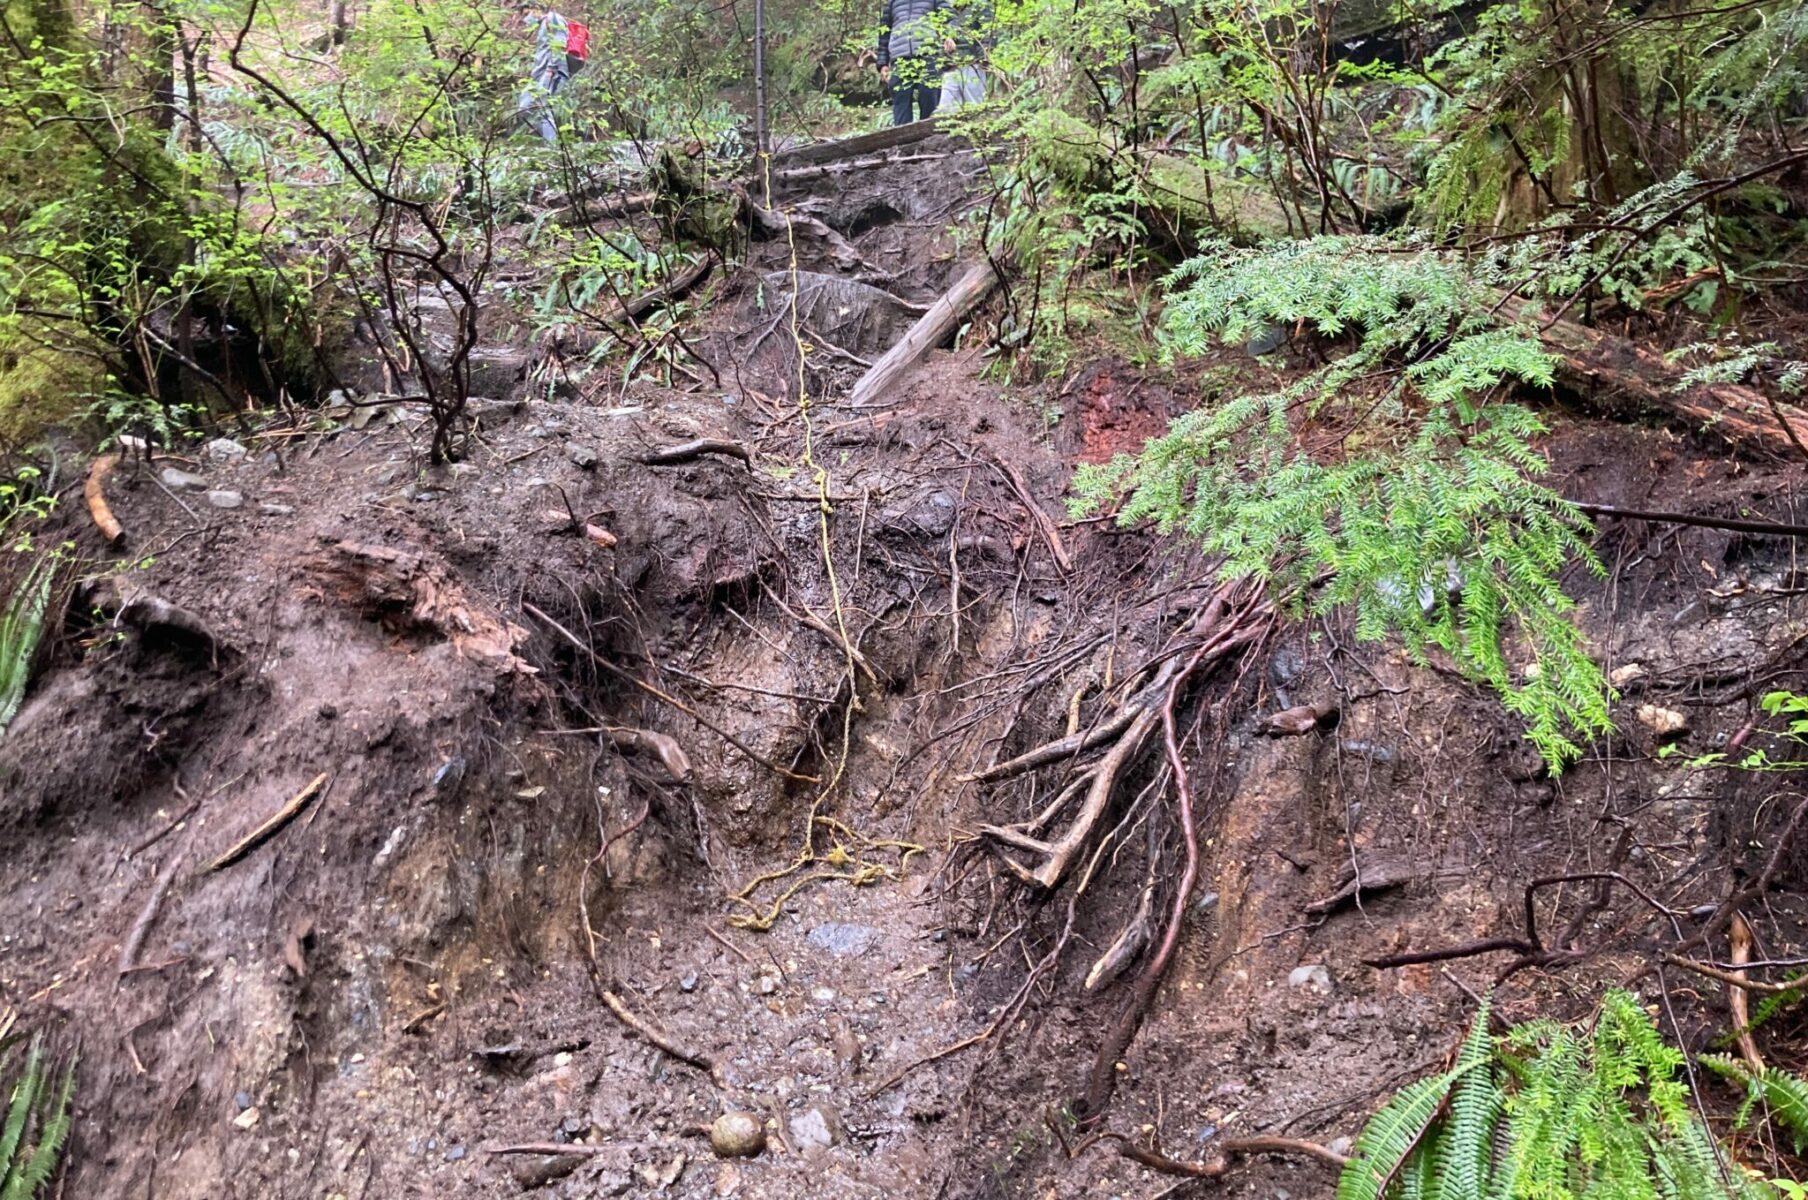 Lots of mud and roots in the forest at the site of a washout on the Lake 22 trail